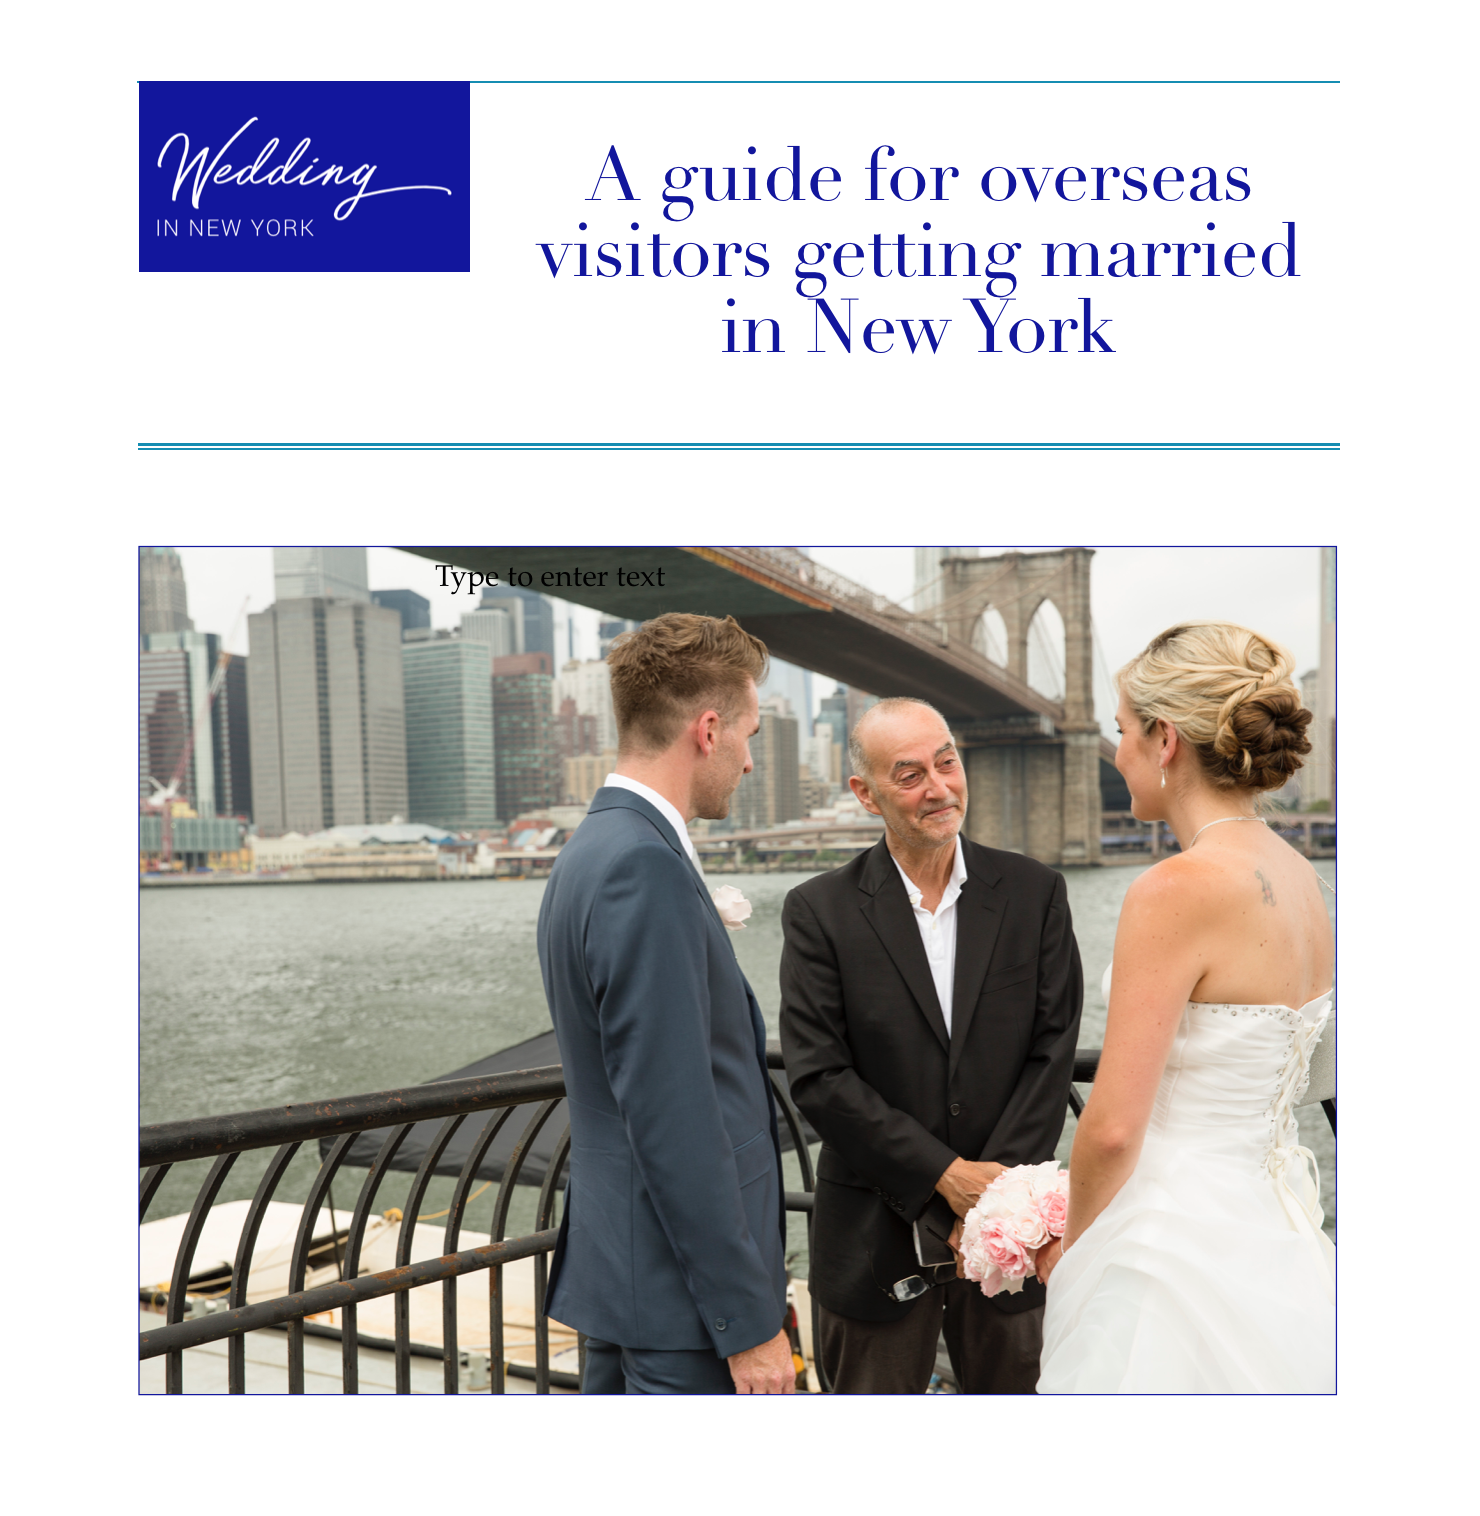 A guide for overseas visitors getting married in New York